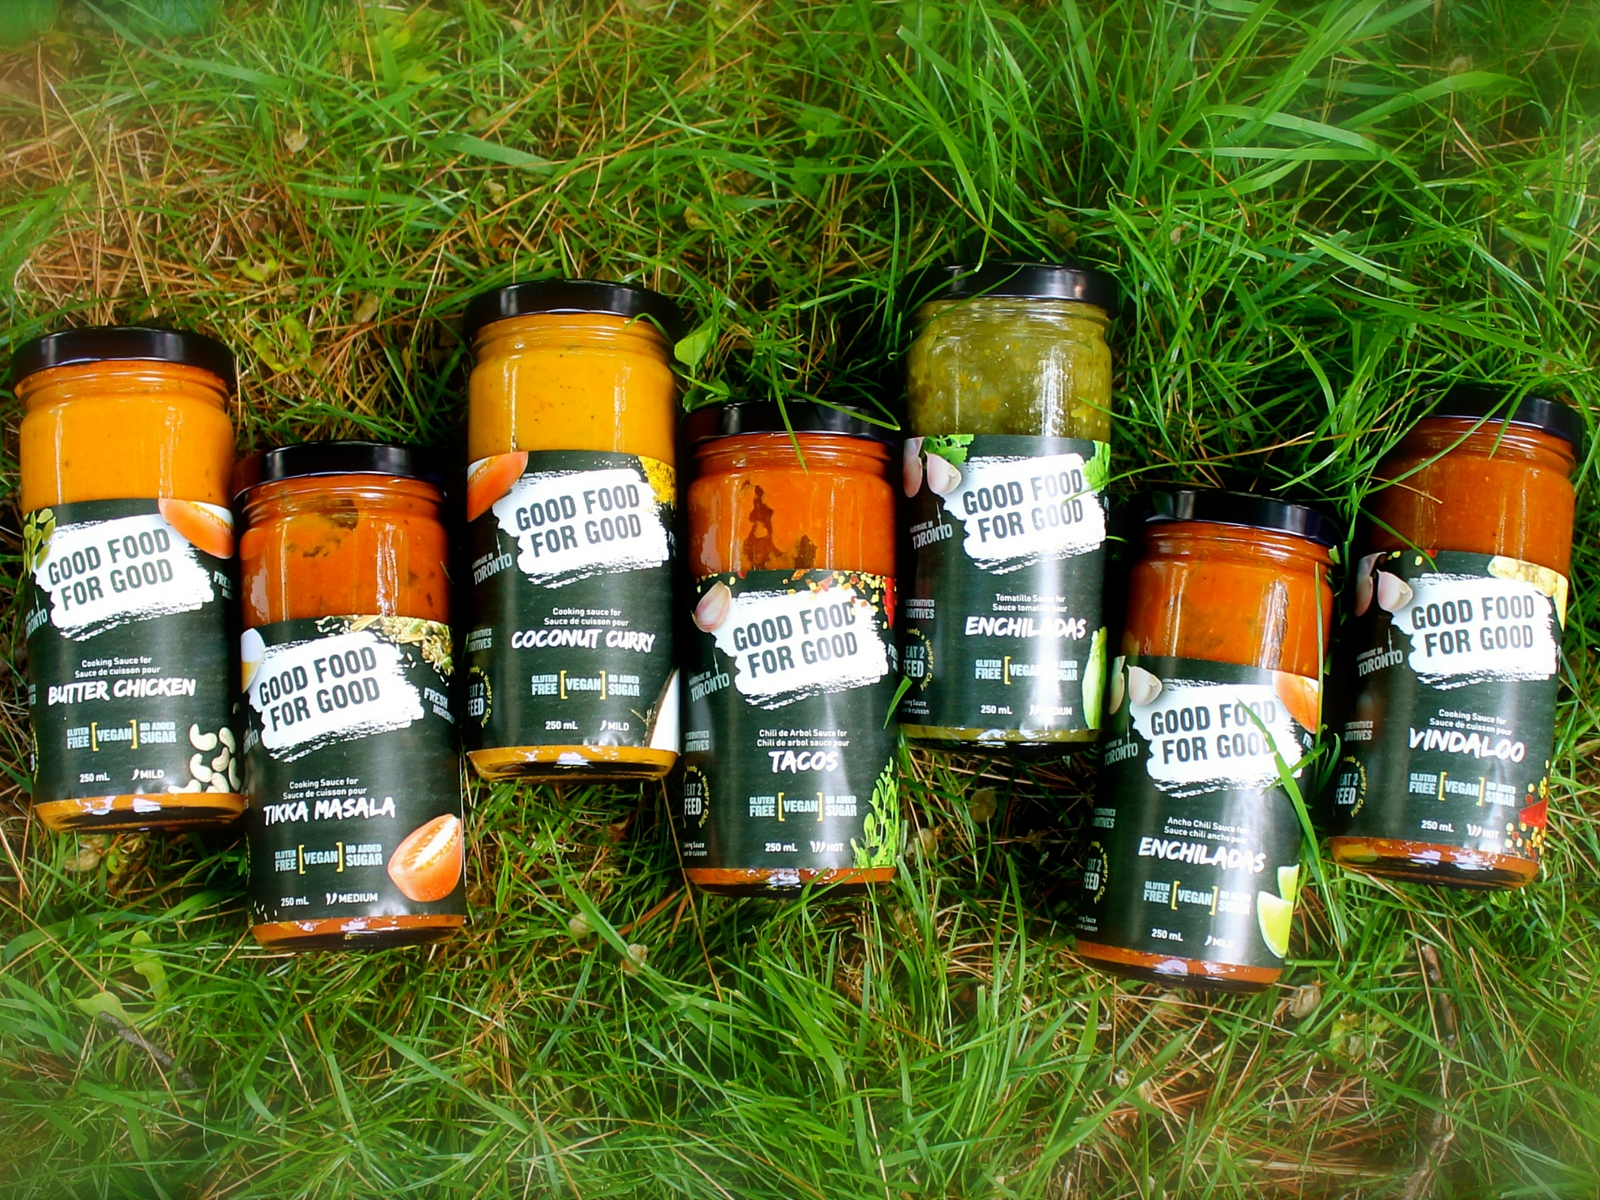 Good Food for Good Fresh Indian and Mexican Sauces